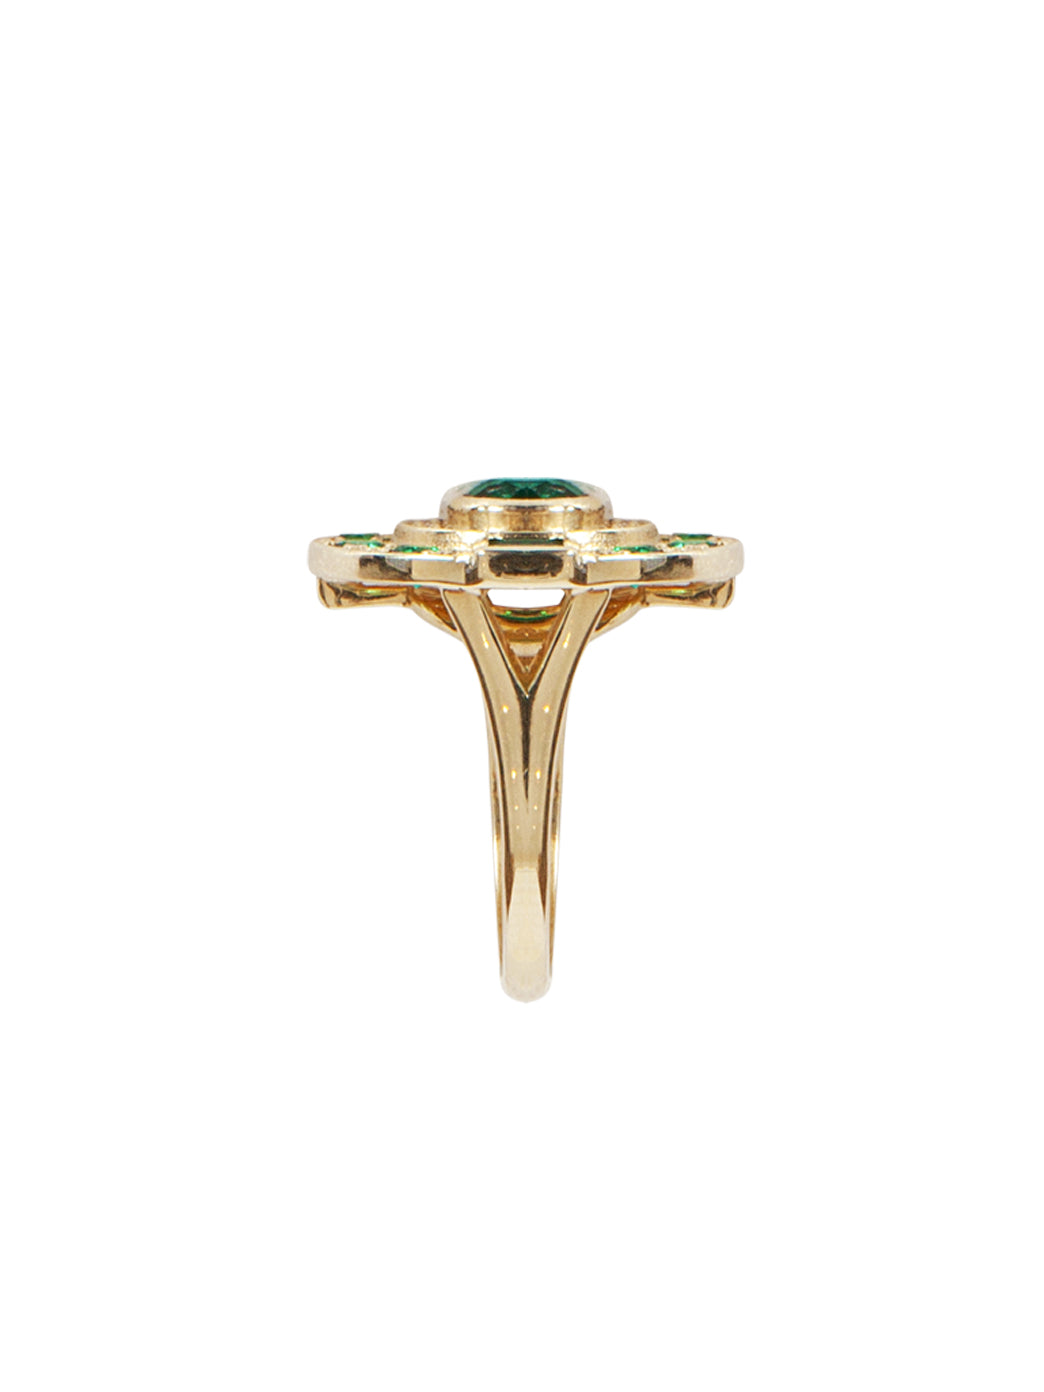 Fiorina Jewellery Aztec Ring Emerald Shank View